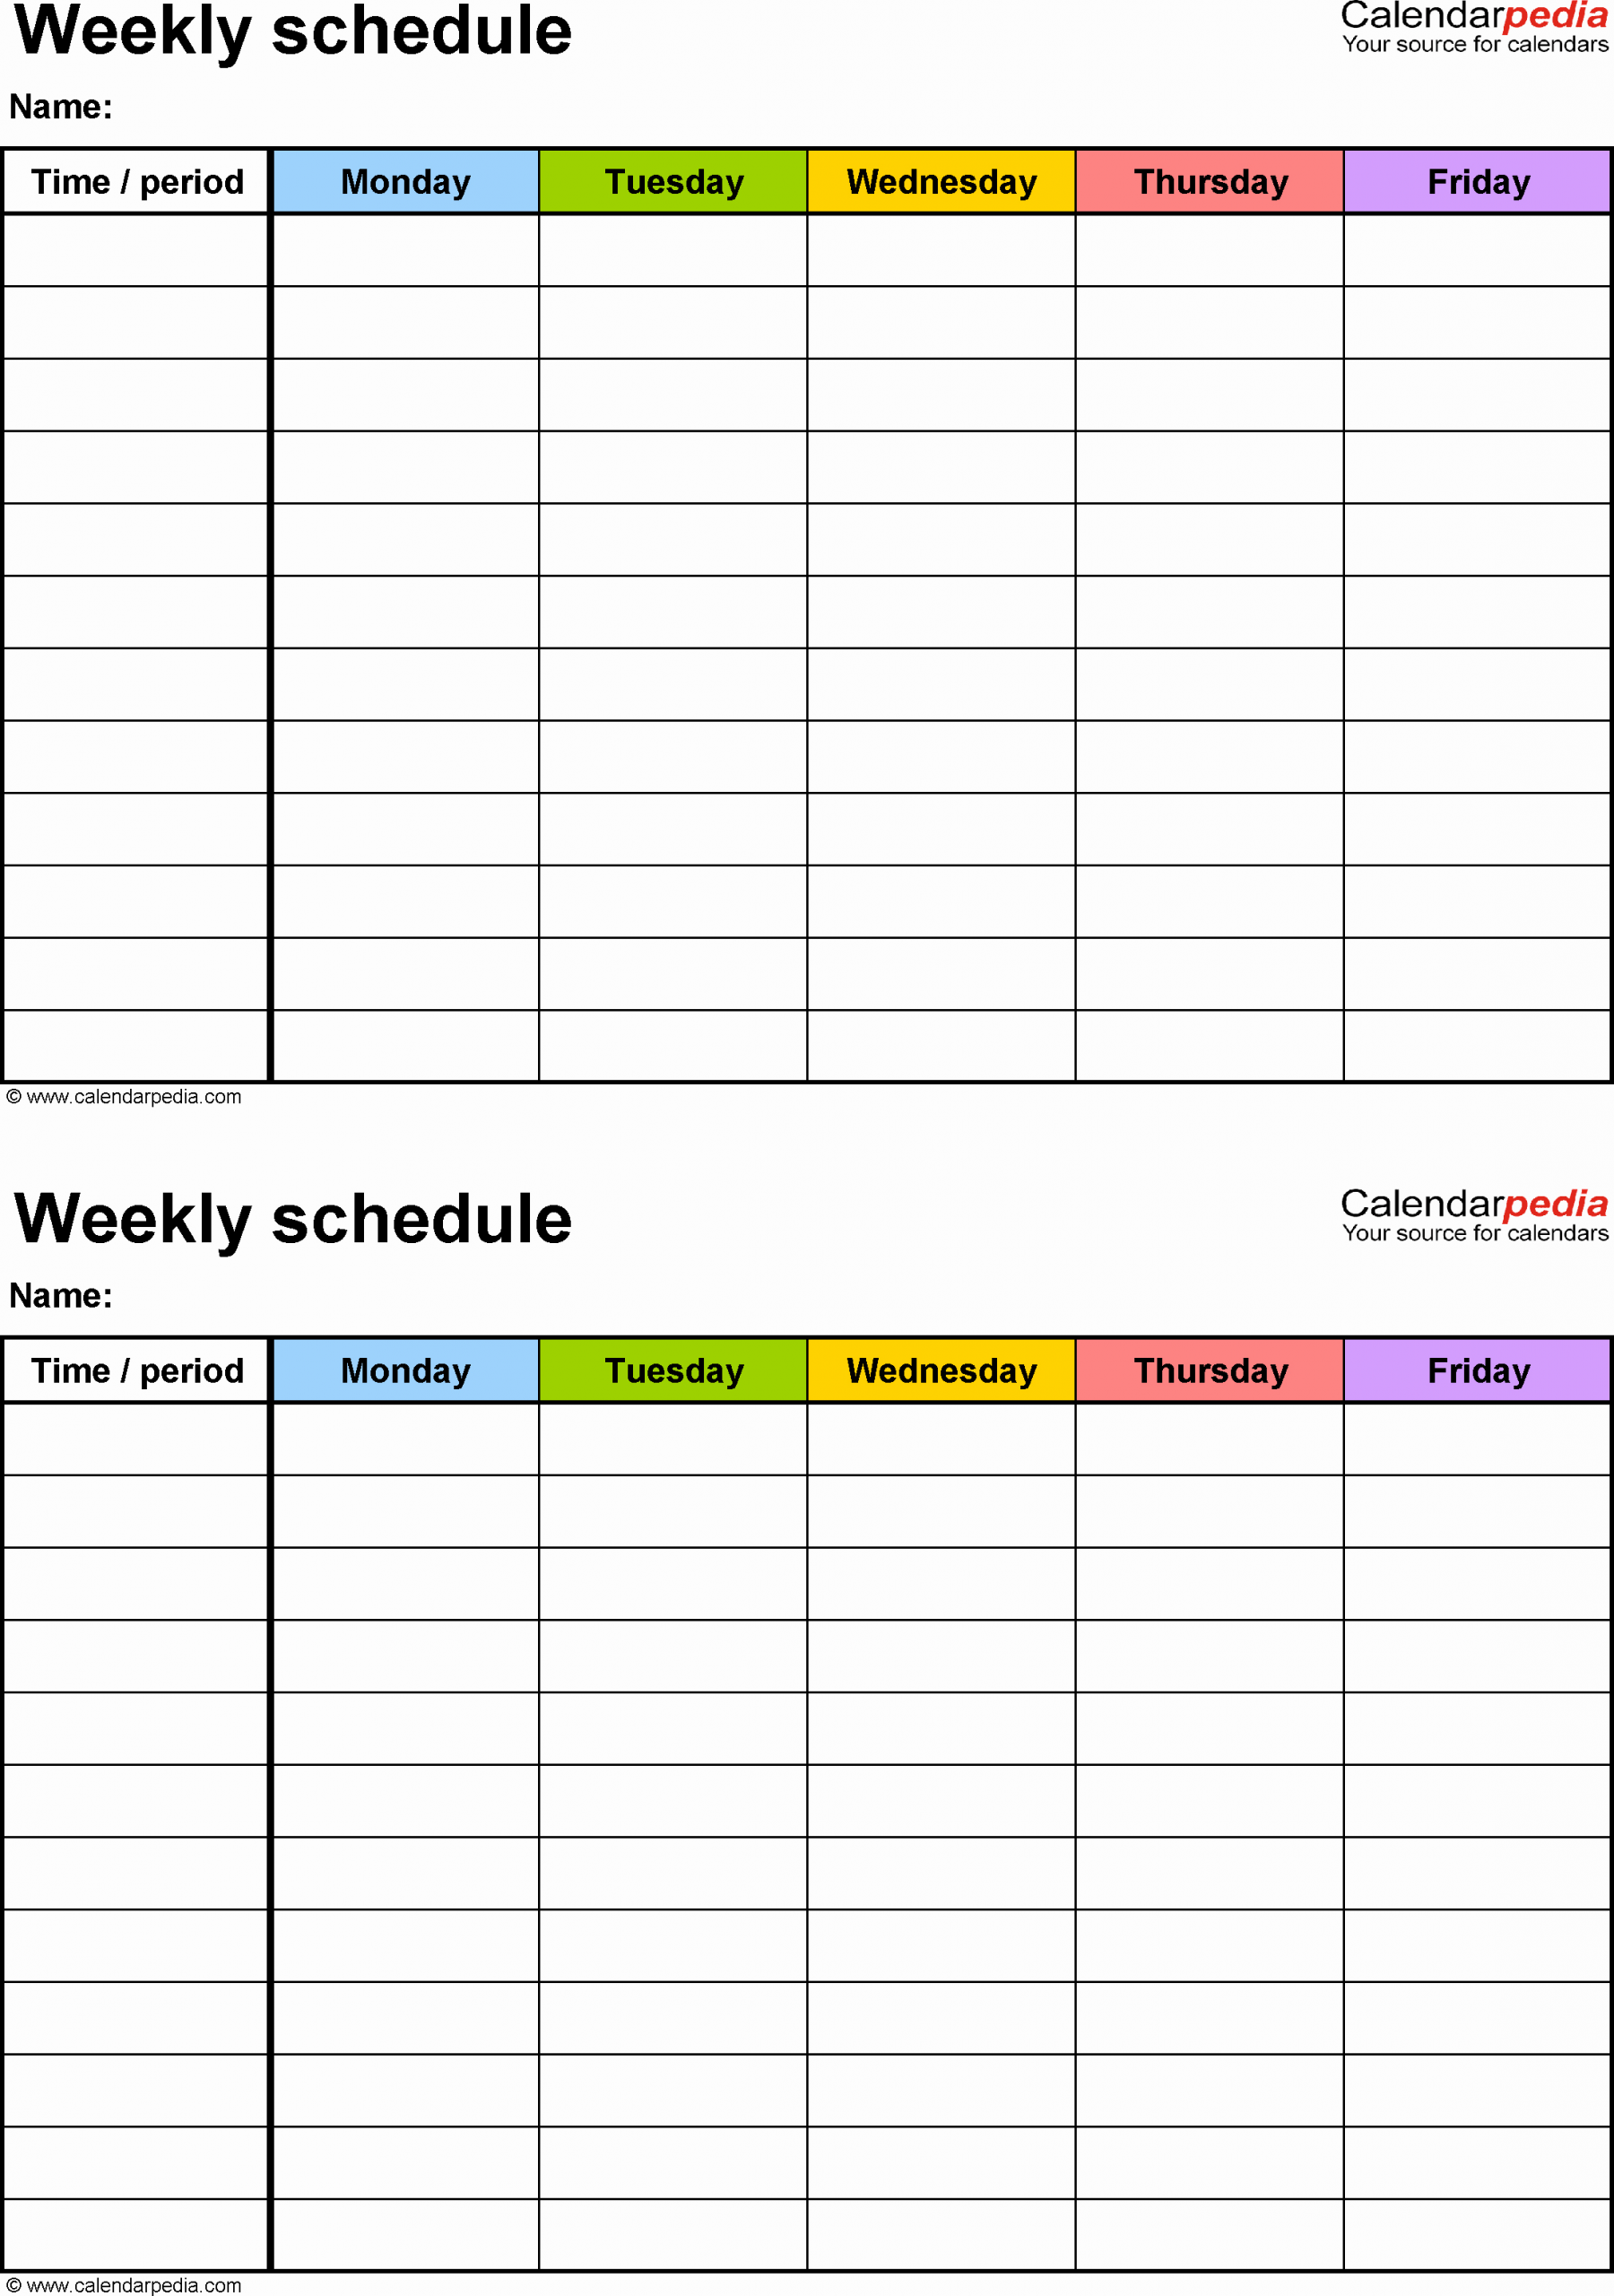 Excel Class Schedule Template Lovely Weekly Schedule Template for Pdf Version 3 2 Schedules On